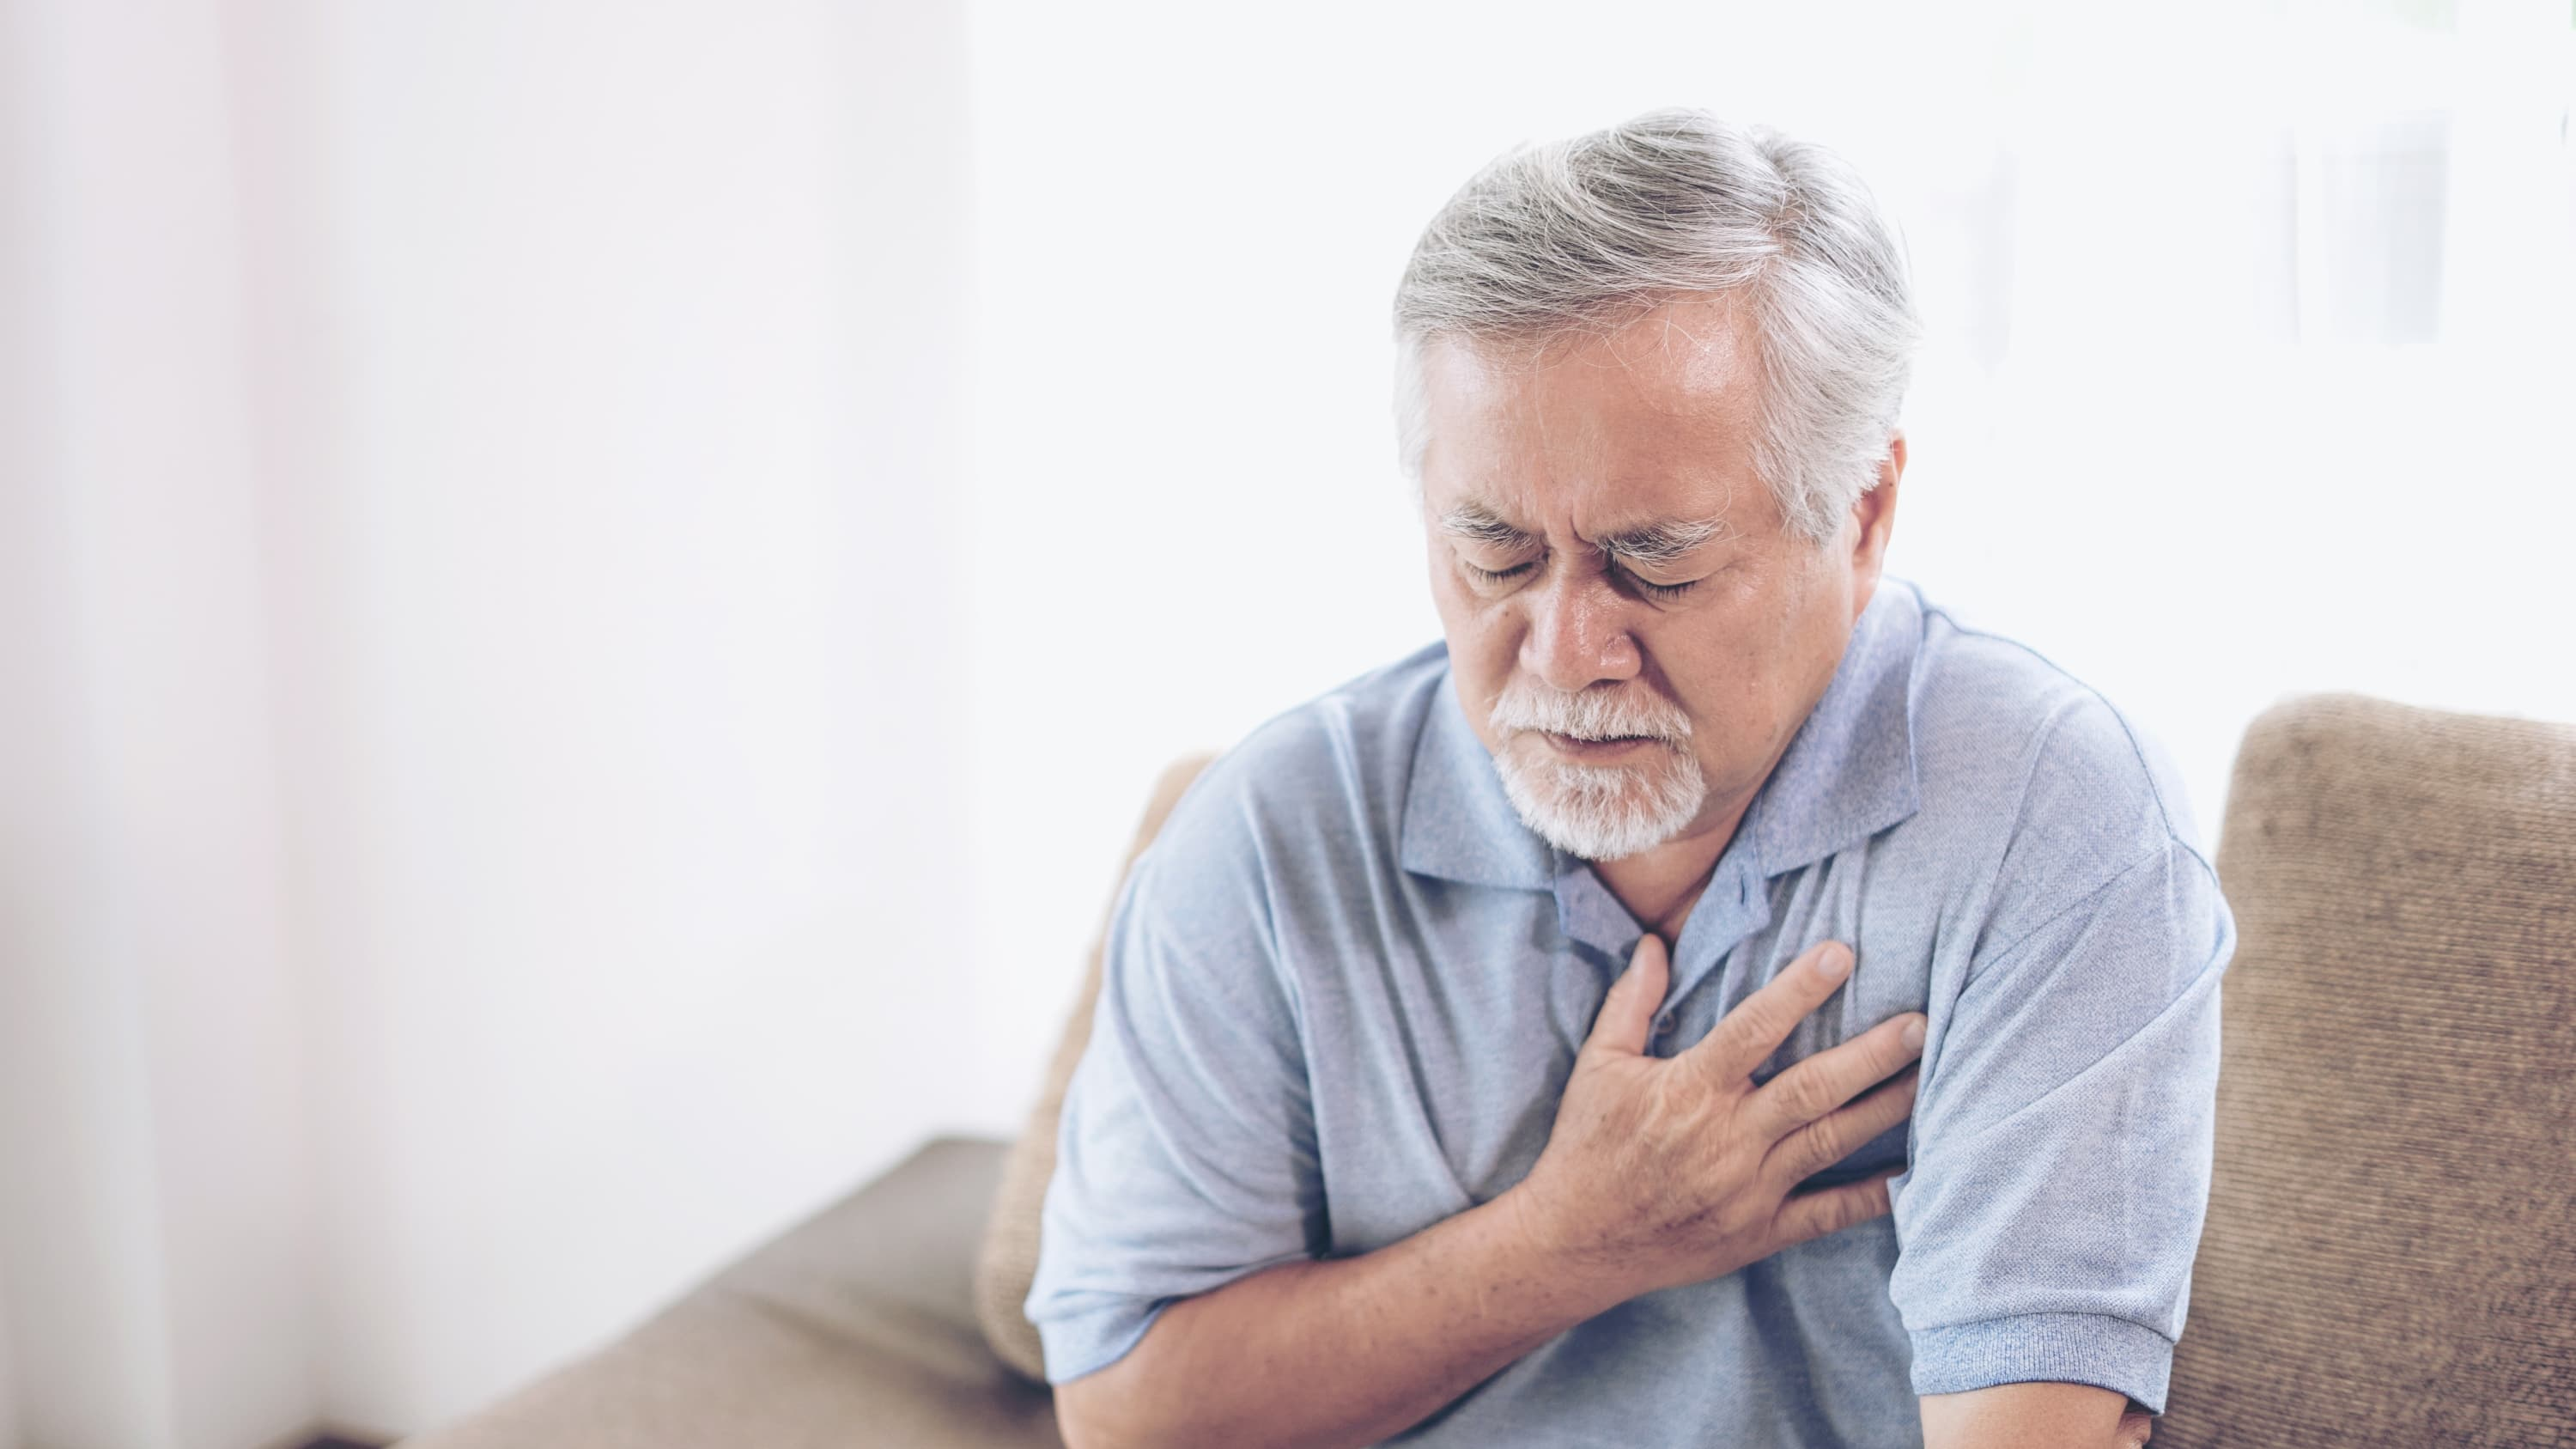 man with chest pain, possibly suffering from cardiac arrest